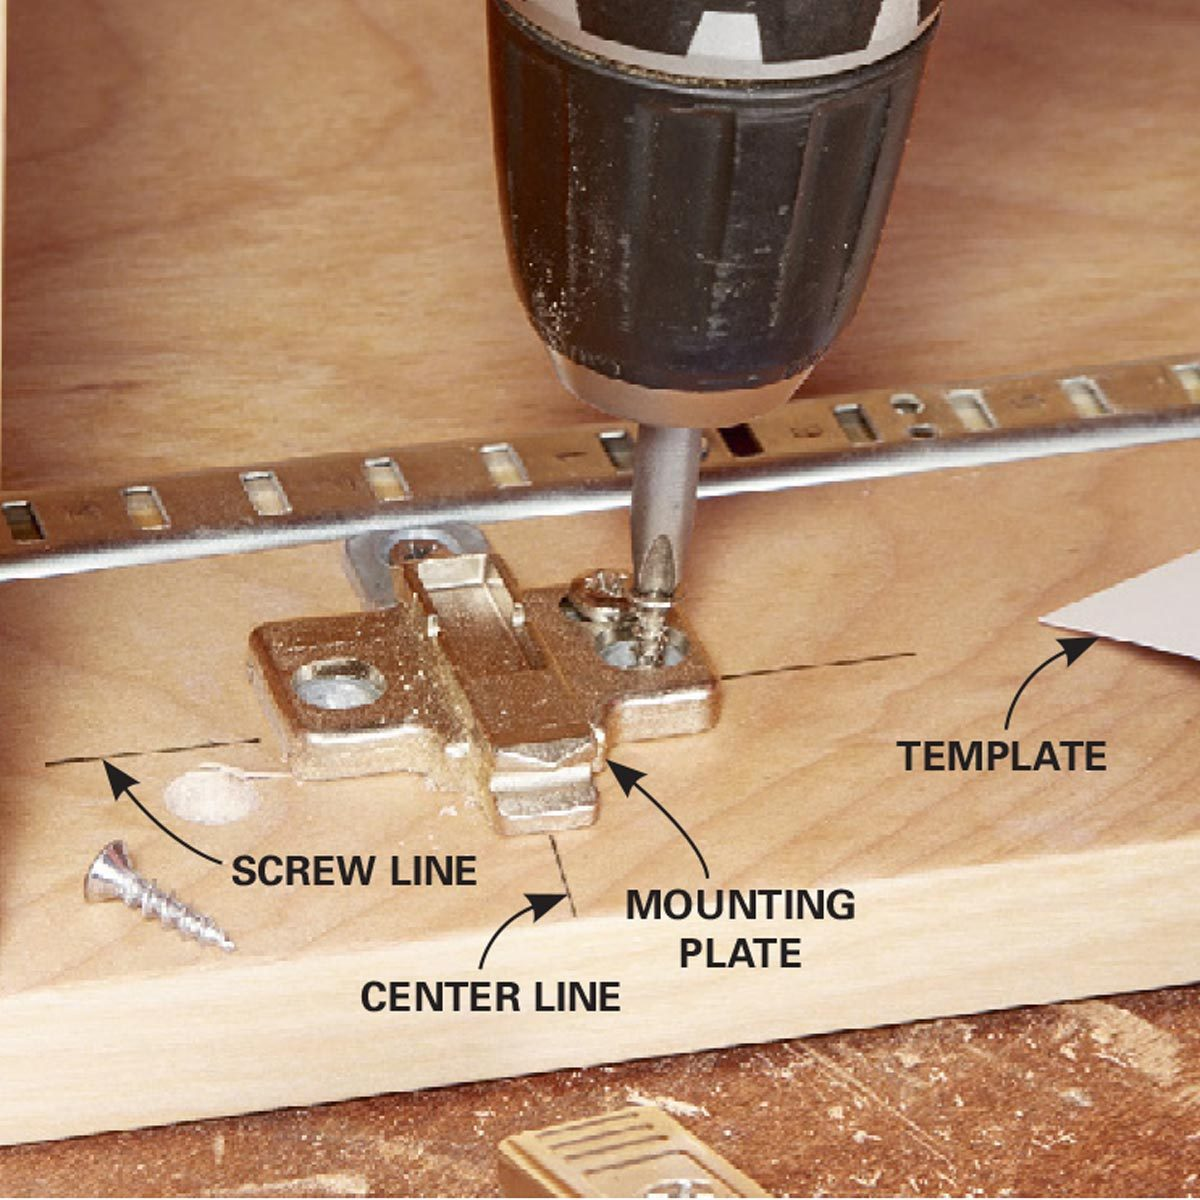 6. Frameless Cabinet Hinges: Install a mounting plate